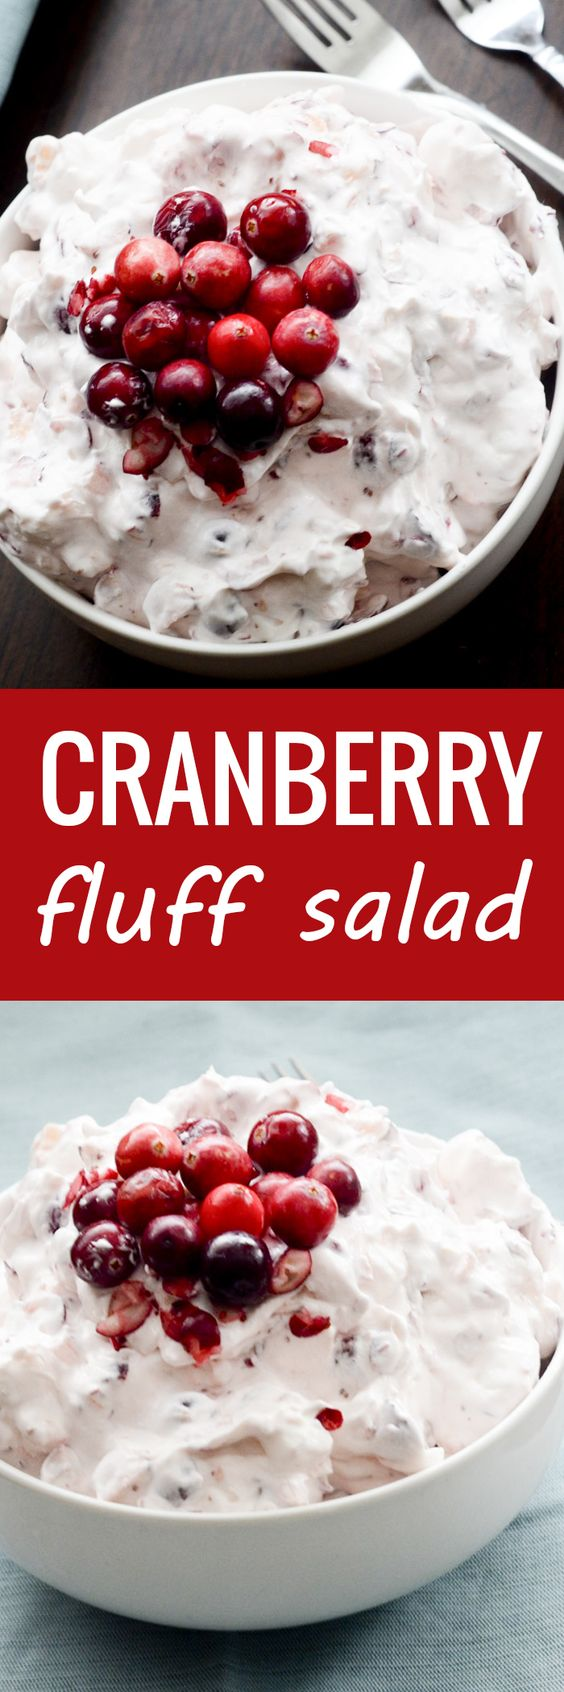 Cranberry Fluff Salad Recipe | Recipe Diaries - The BEST Classic, Improved and Traditional Thanksgiving Dinner Menu Favorites Recipes - Main Dishes, Side Dishes, Appetizers, Salads, Yummy Desserts and more!